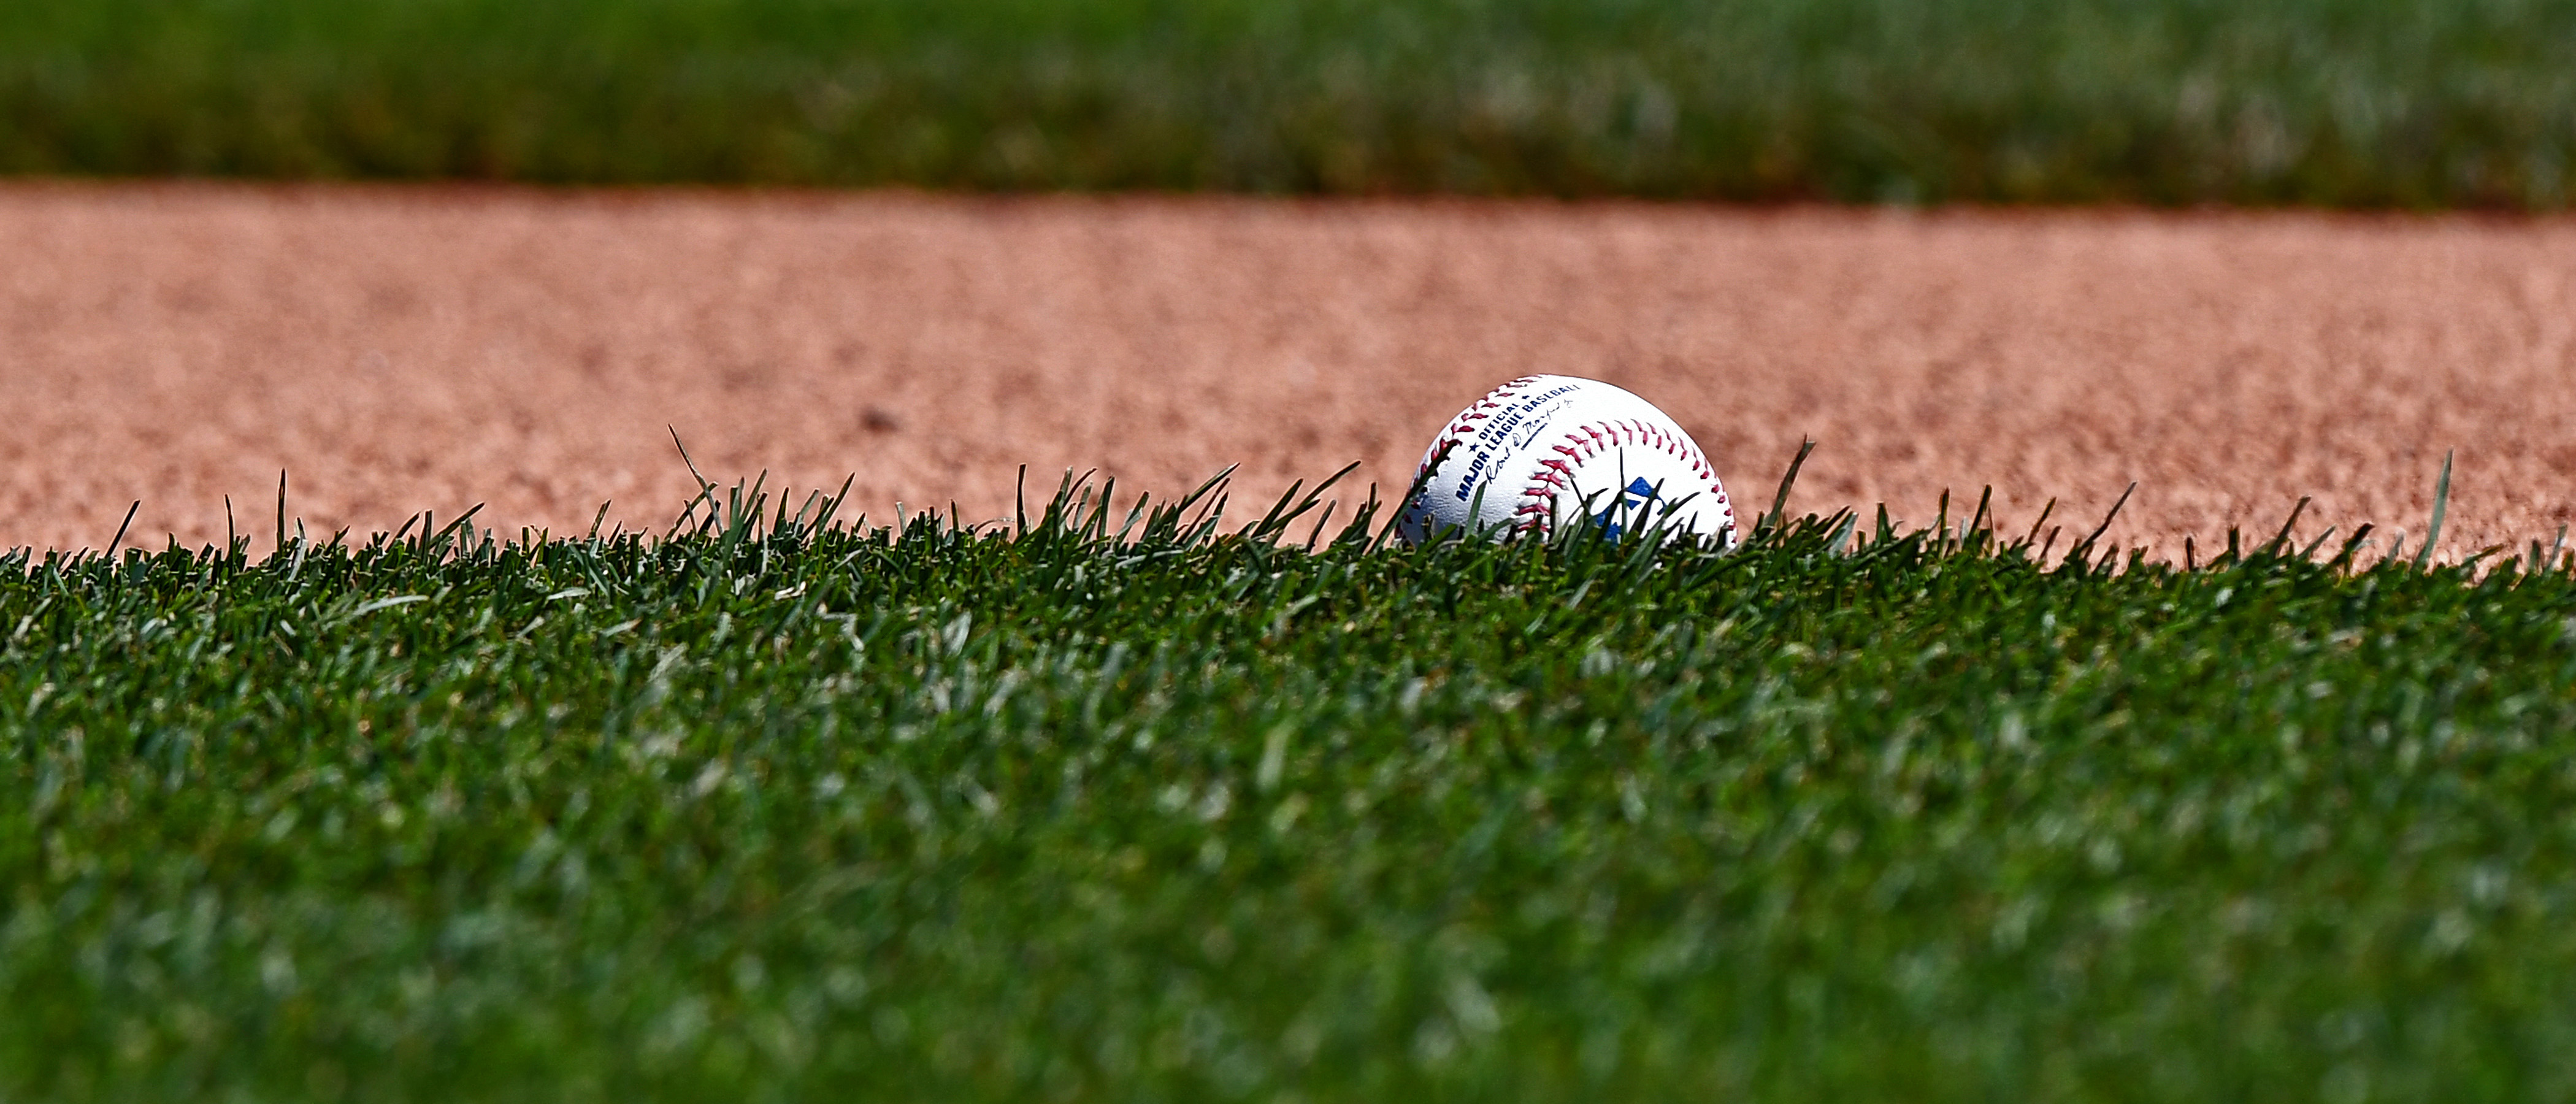 10045125-mlb-cleveland-indians-at-kansas-city-royals